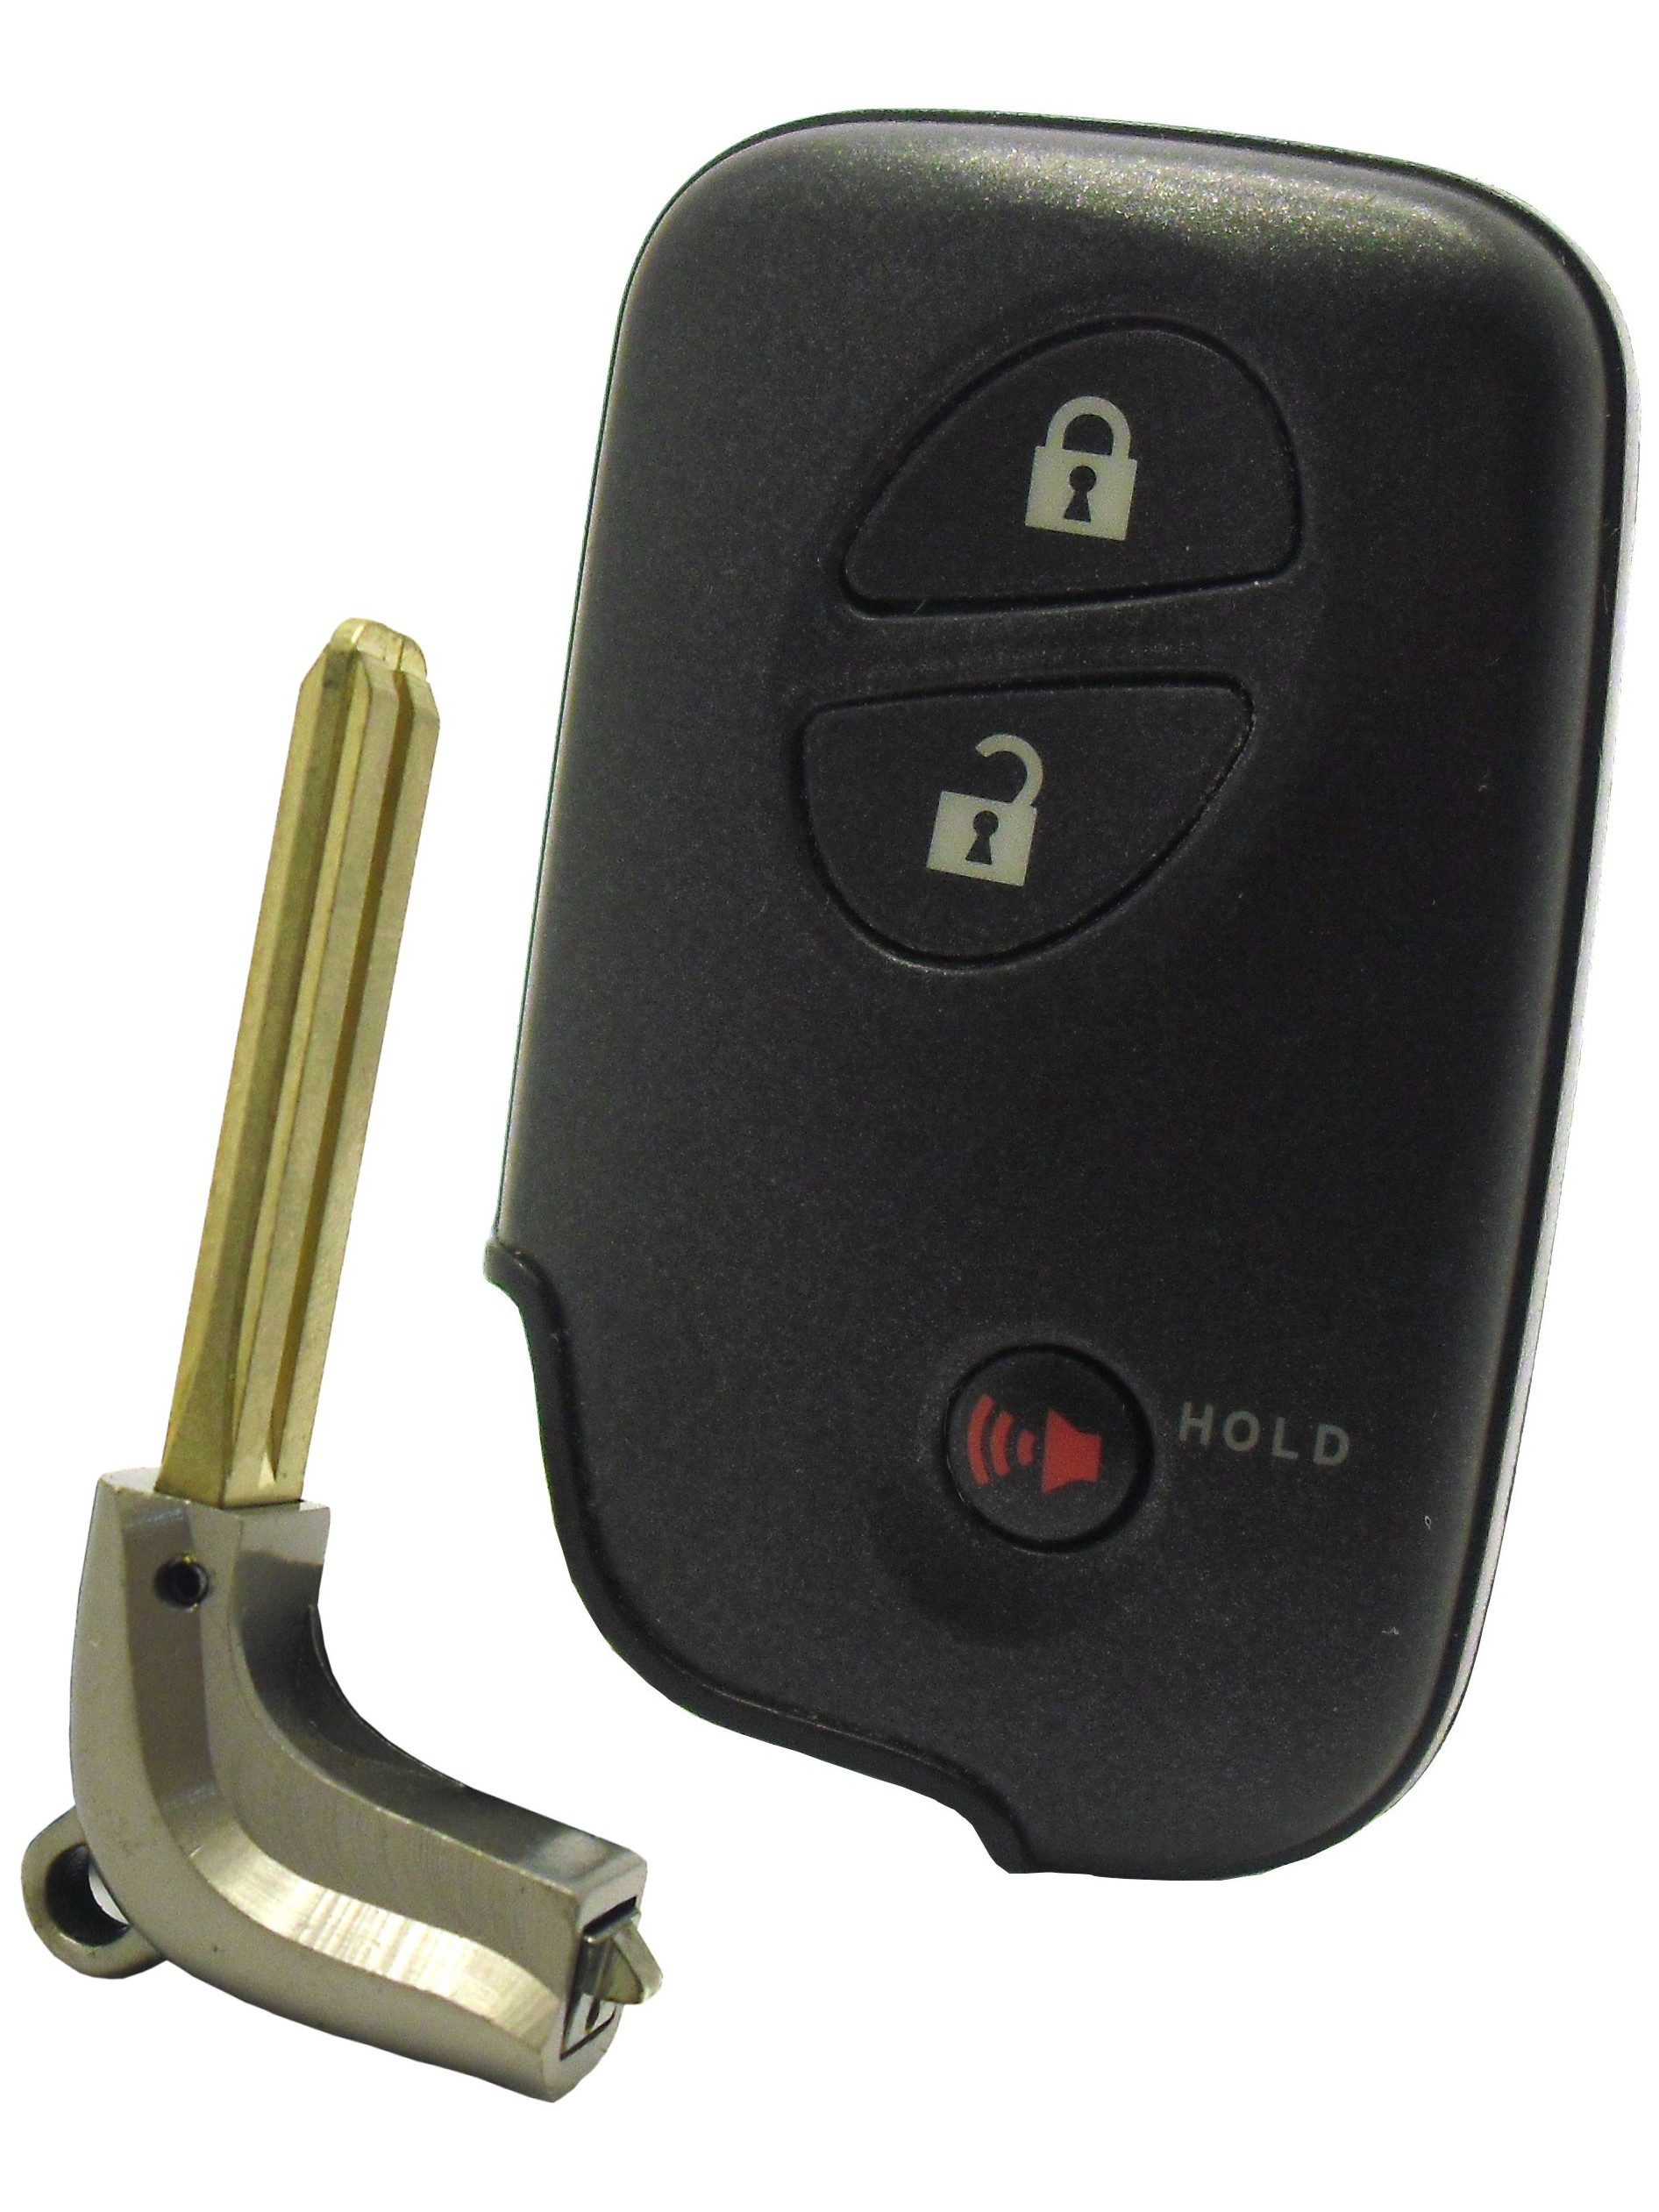 Lexus Remote Entry Smart Key - 3 Button